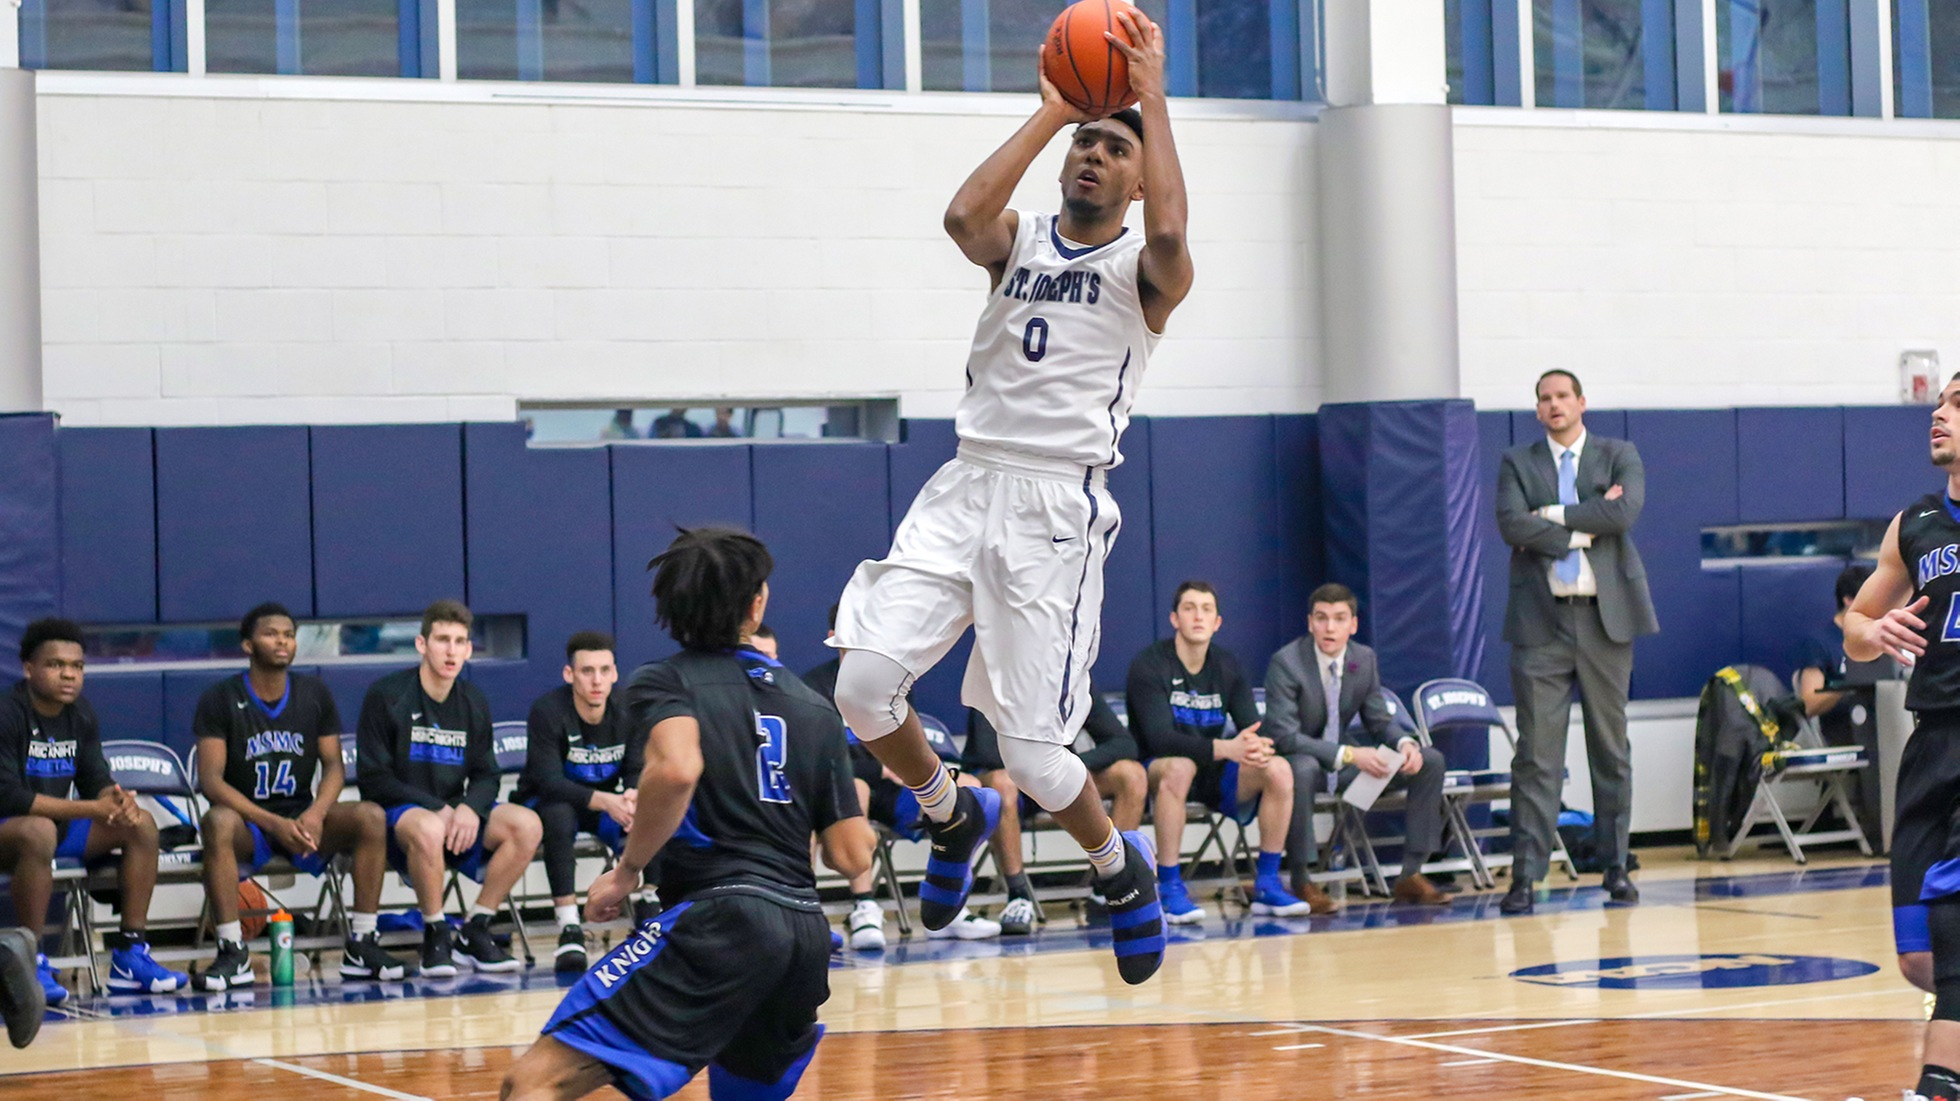 Etheart's Monster Effort Helps Men's Basketball Sink Maritime